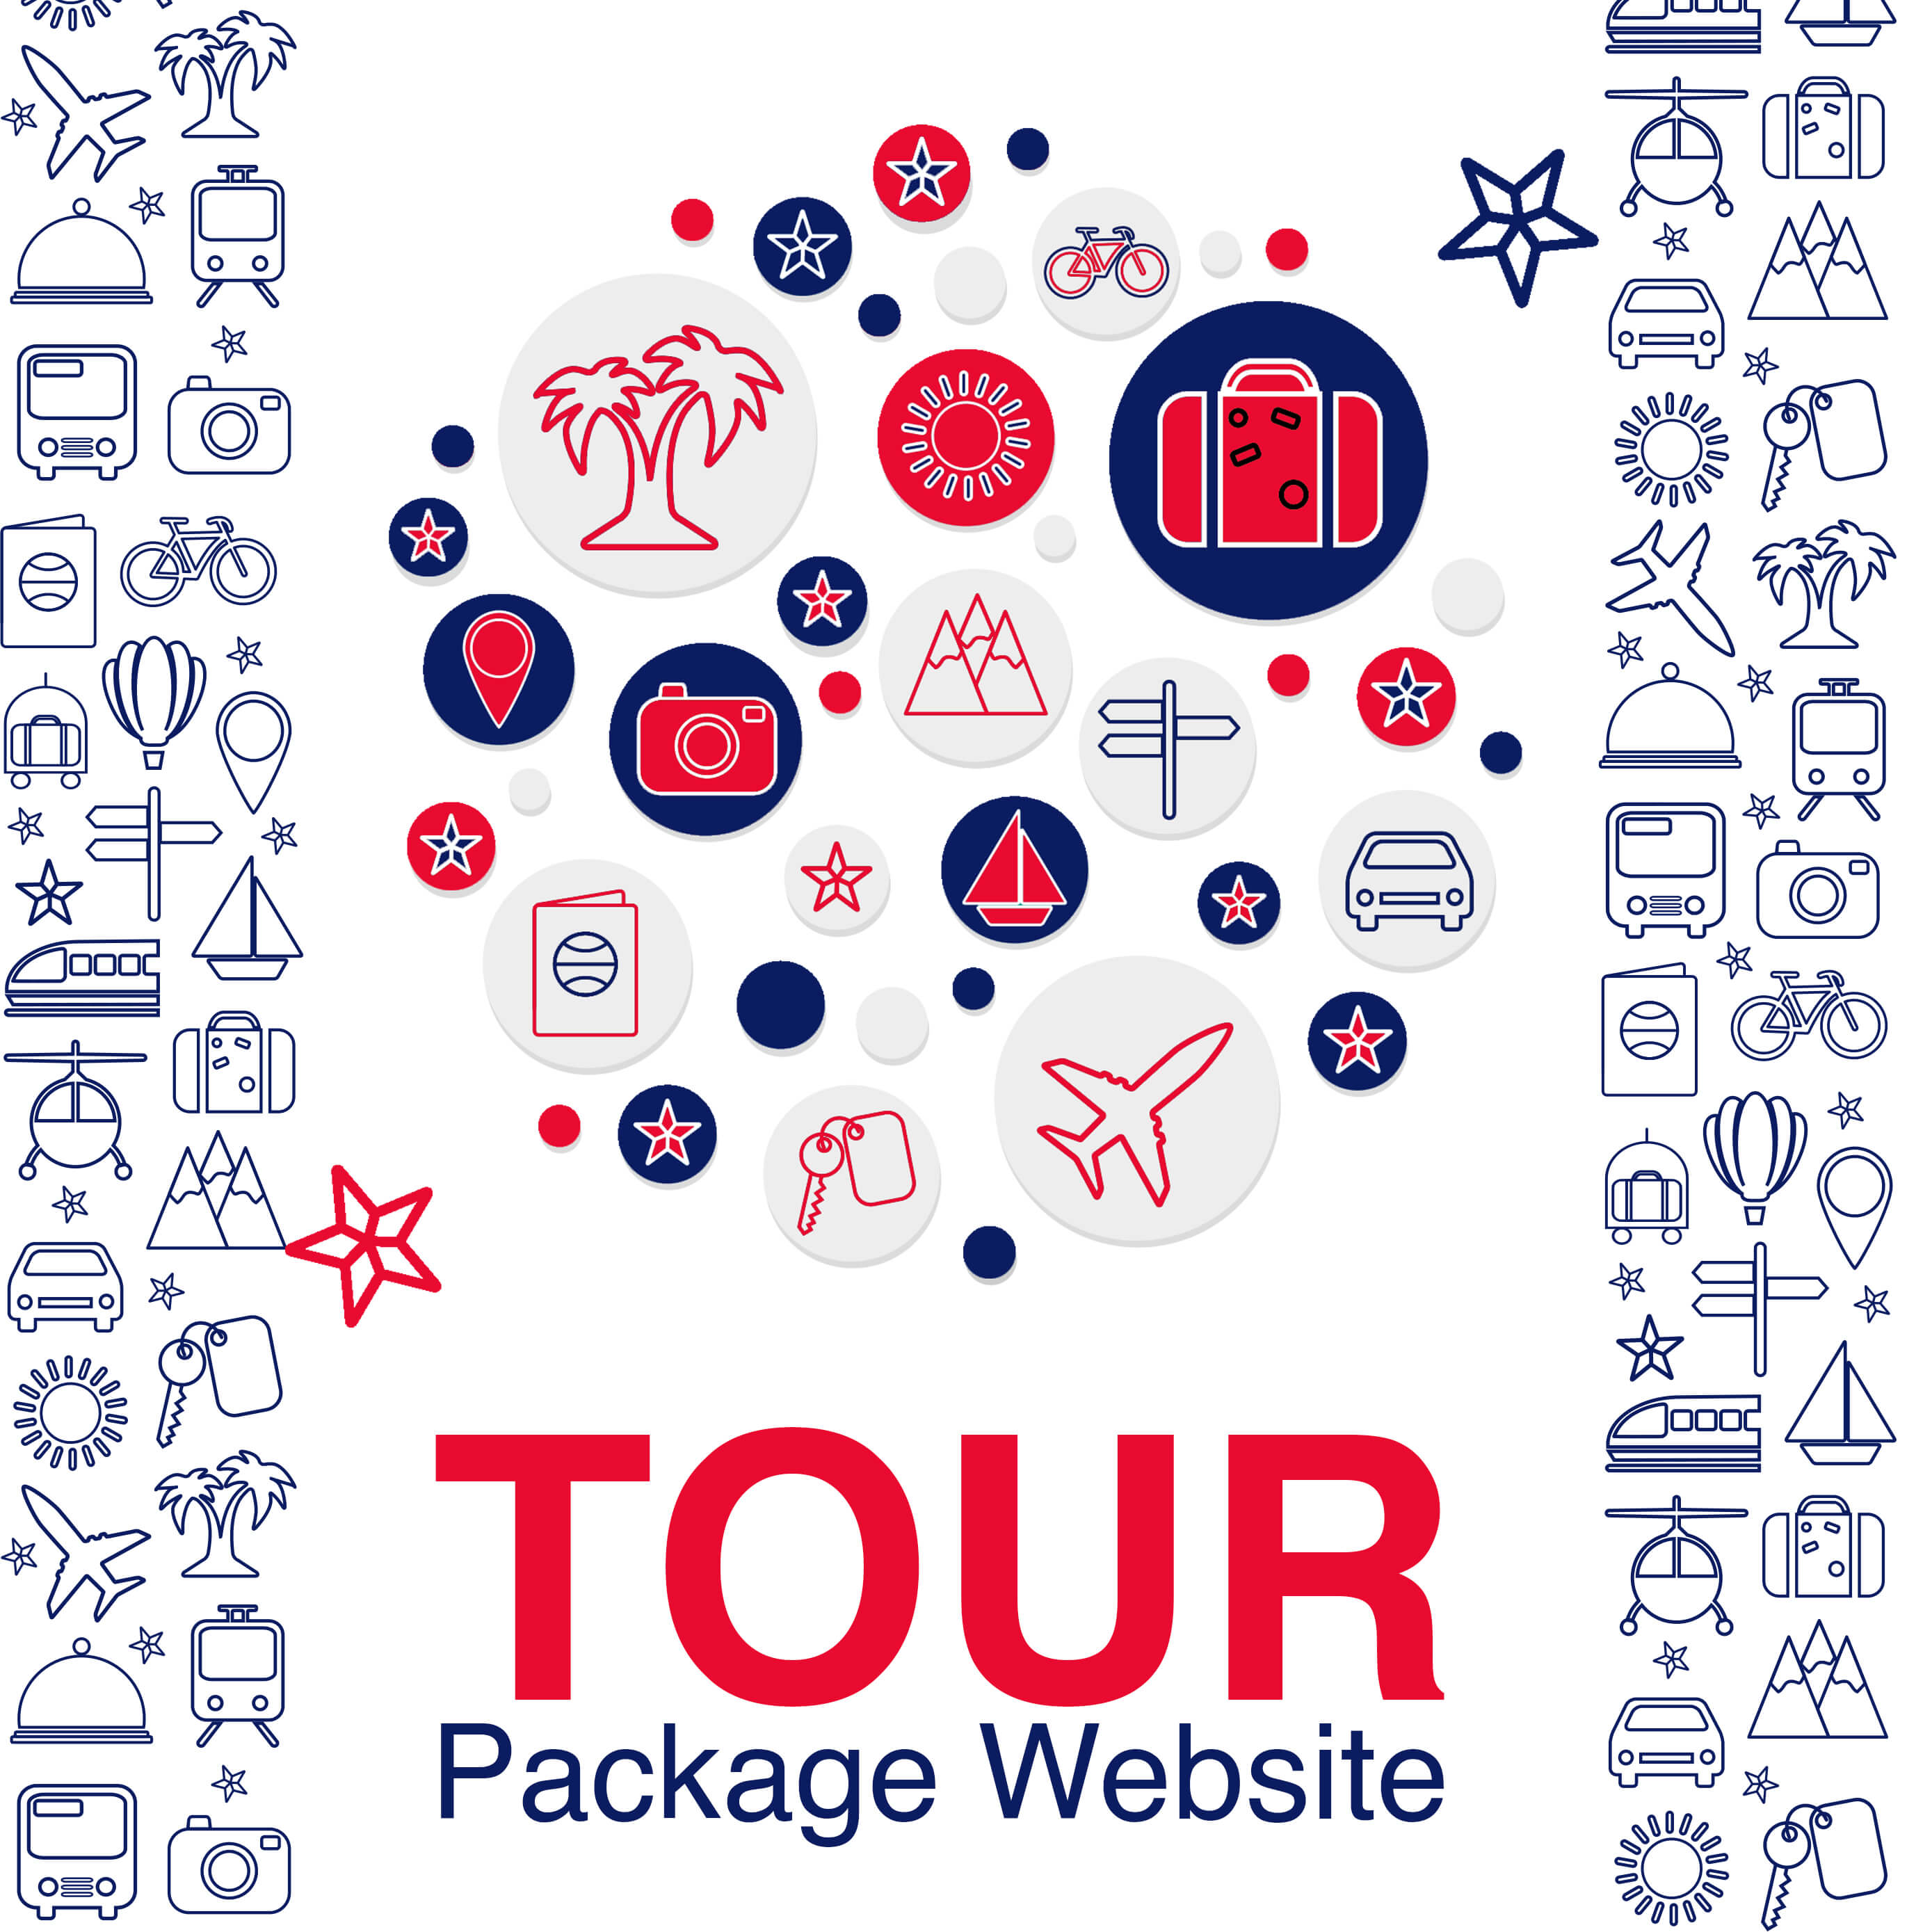 tour-package-website